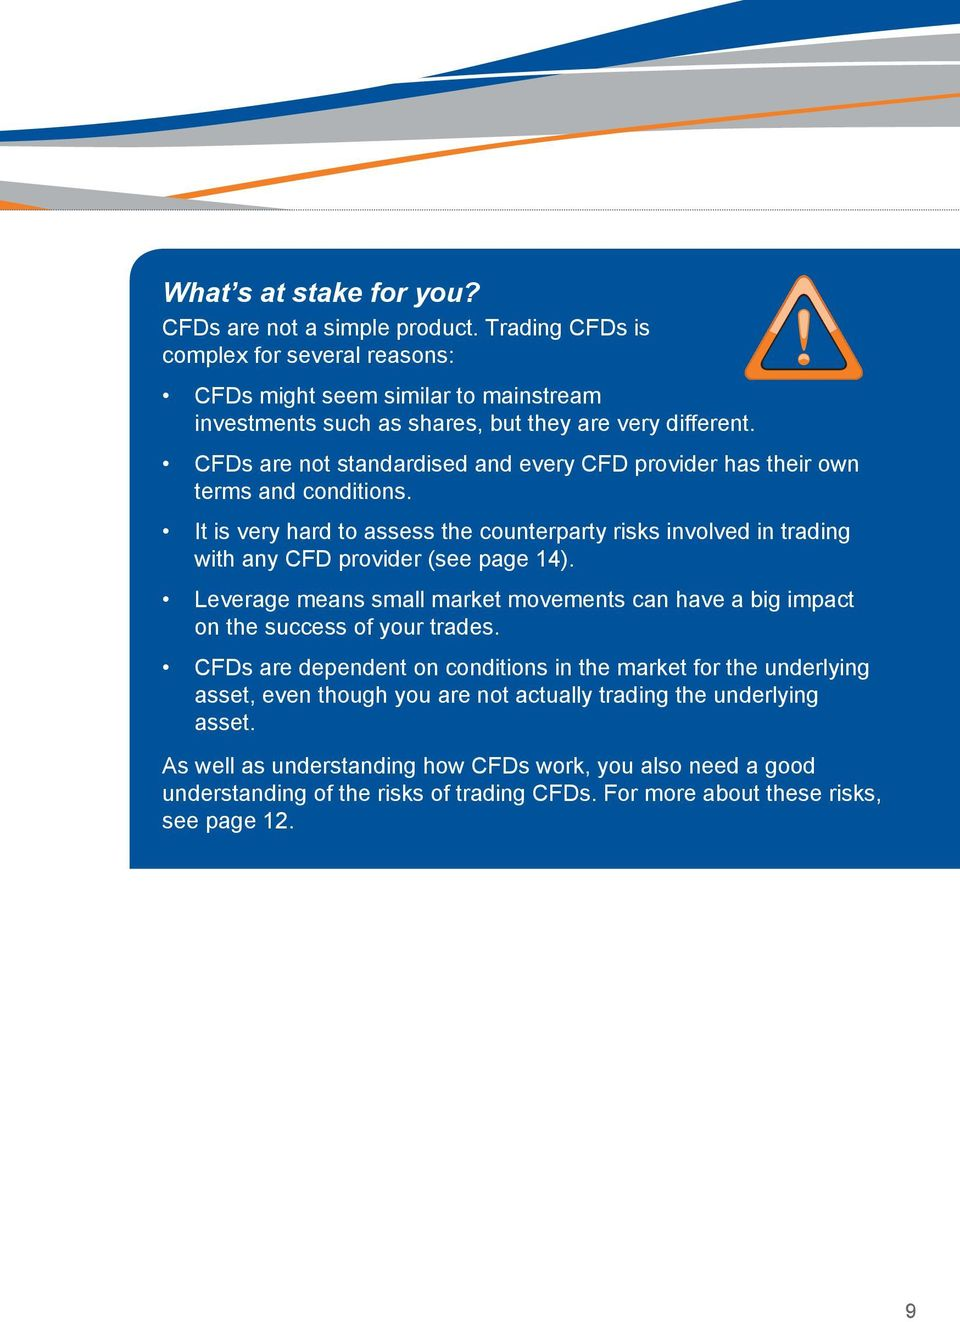 CFDs are not standardised and every CFD provider has their own terms and conditions. It is very hard to assess the counterparty risks involved in trading with any CFD provider (see page 14).